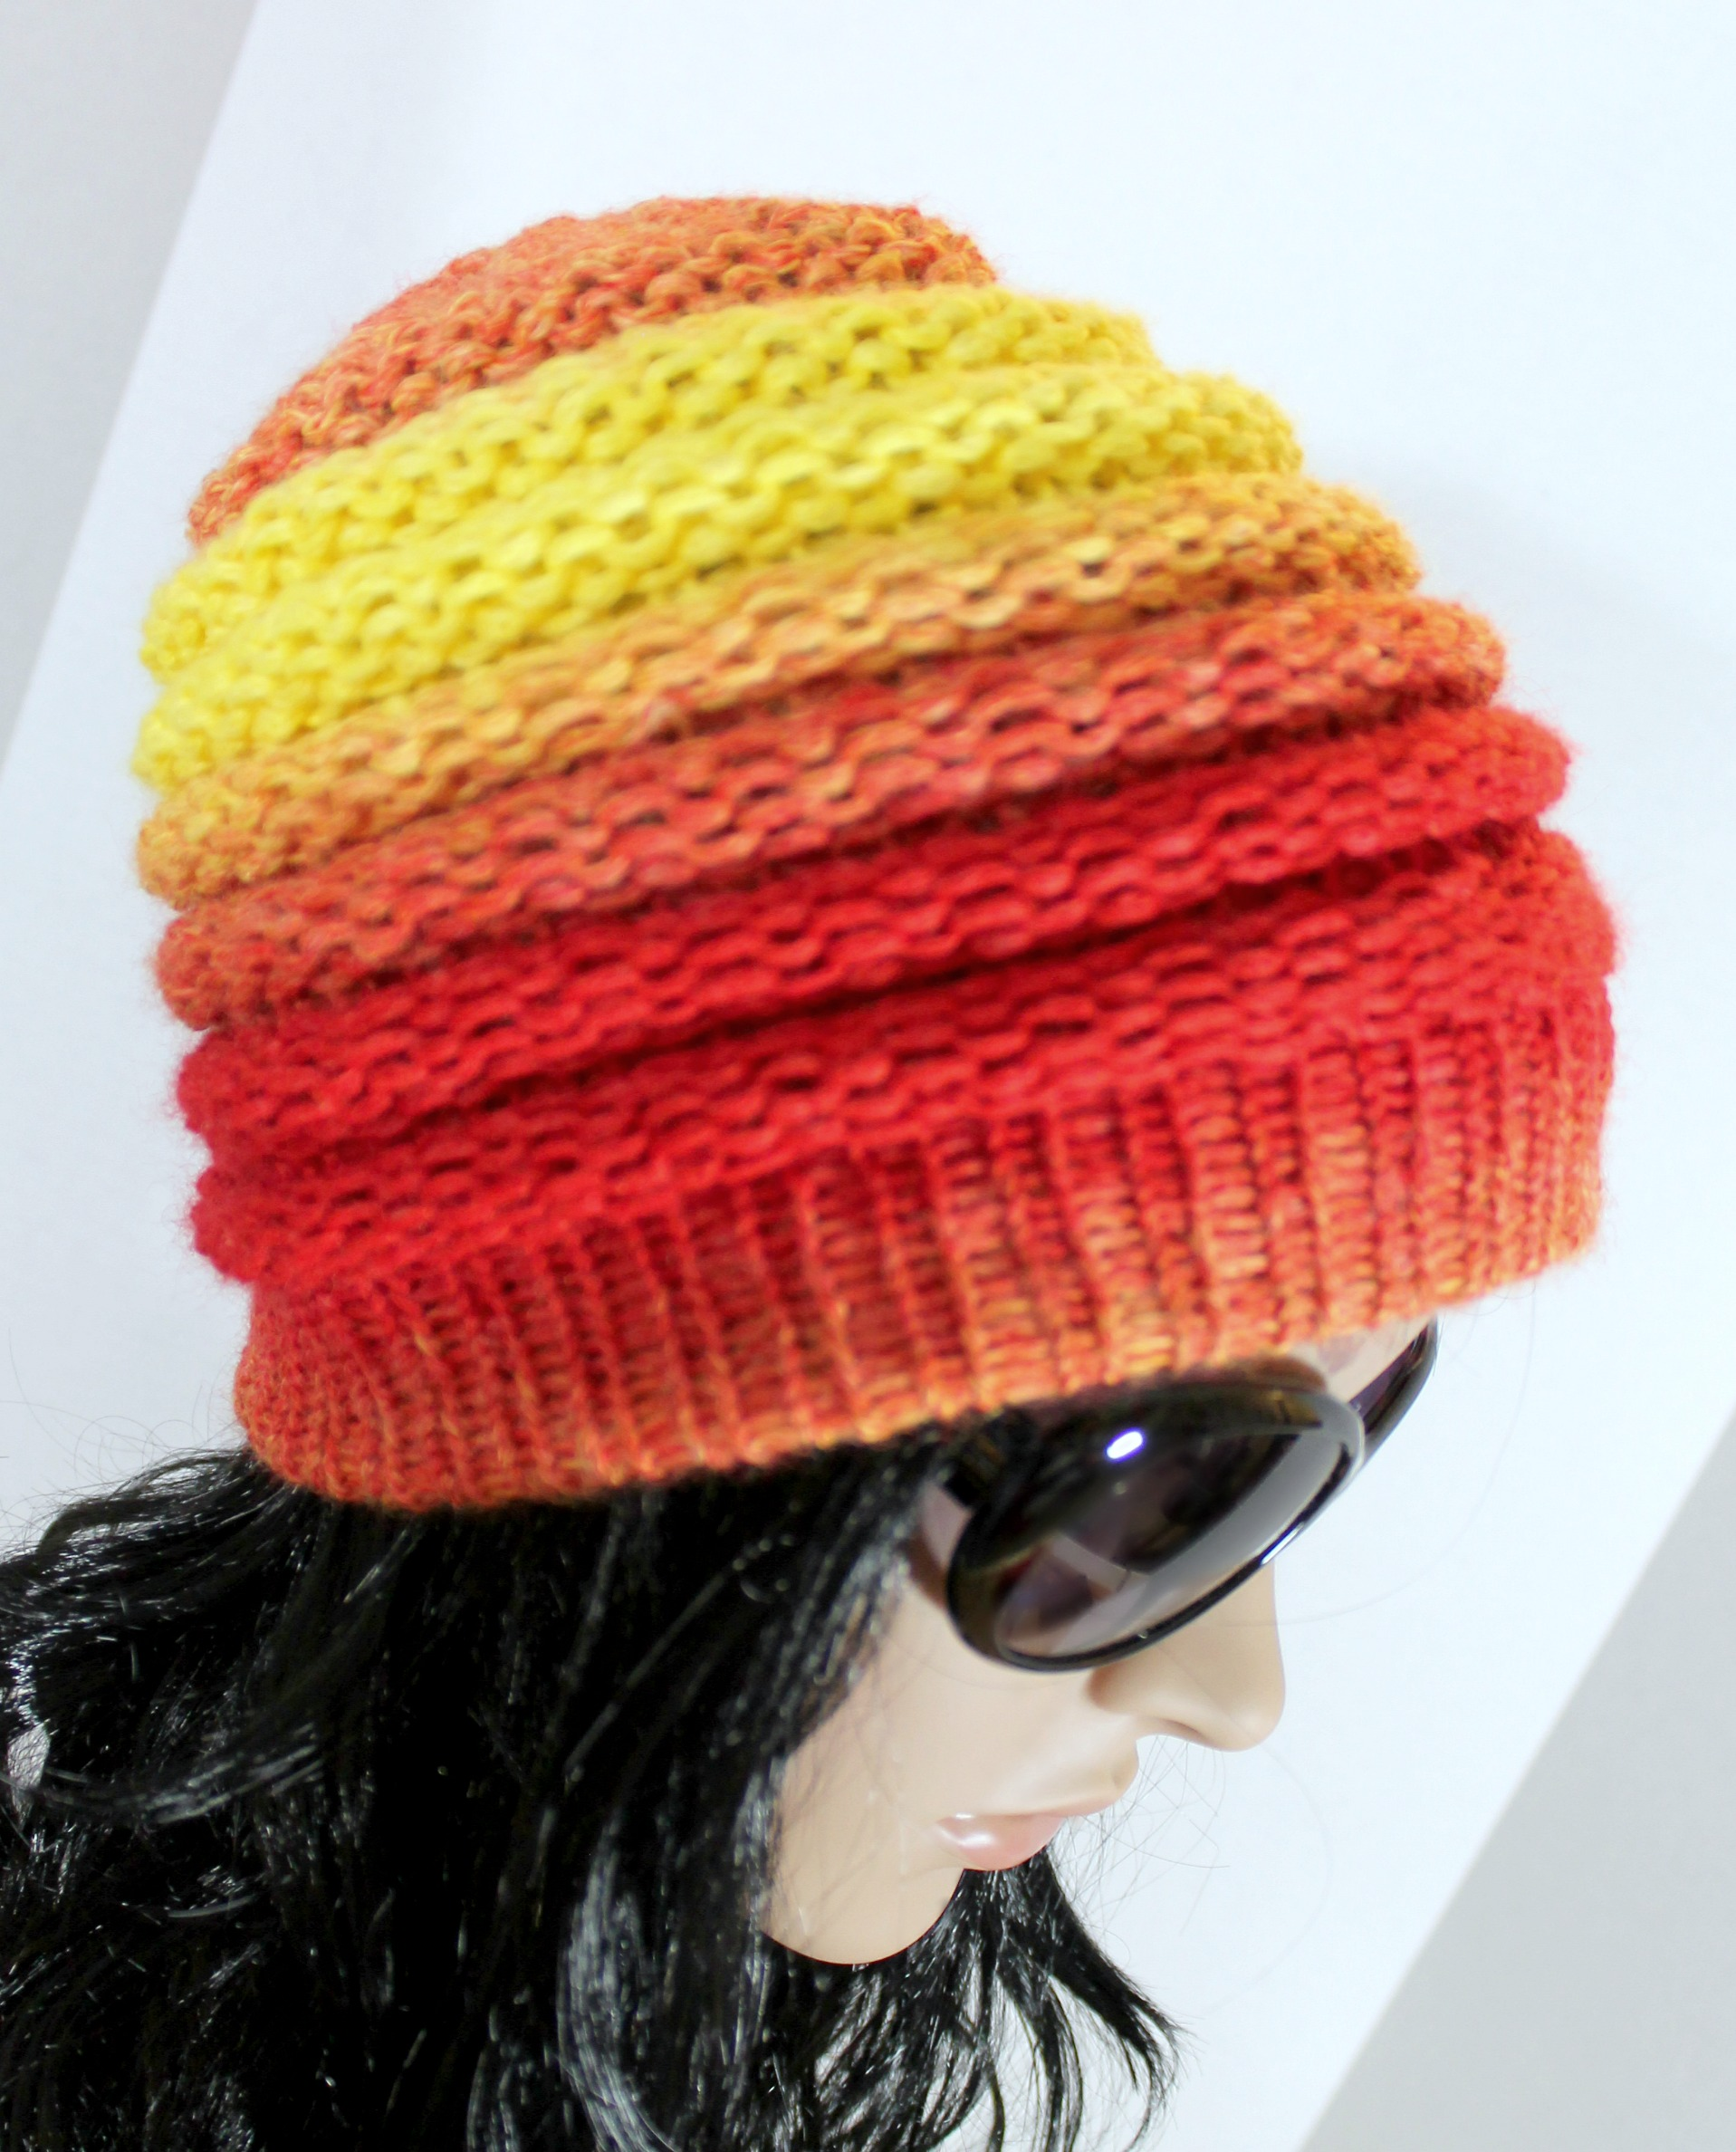 Knitted Beanie Patterns Amazing Inspiration Ideas